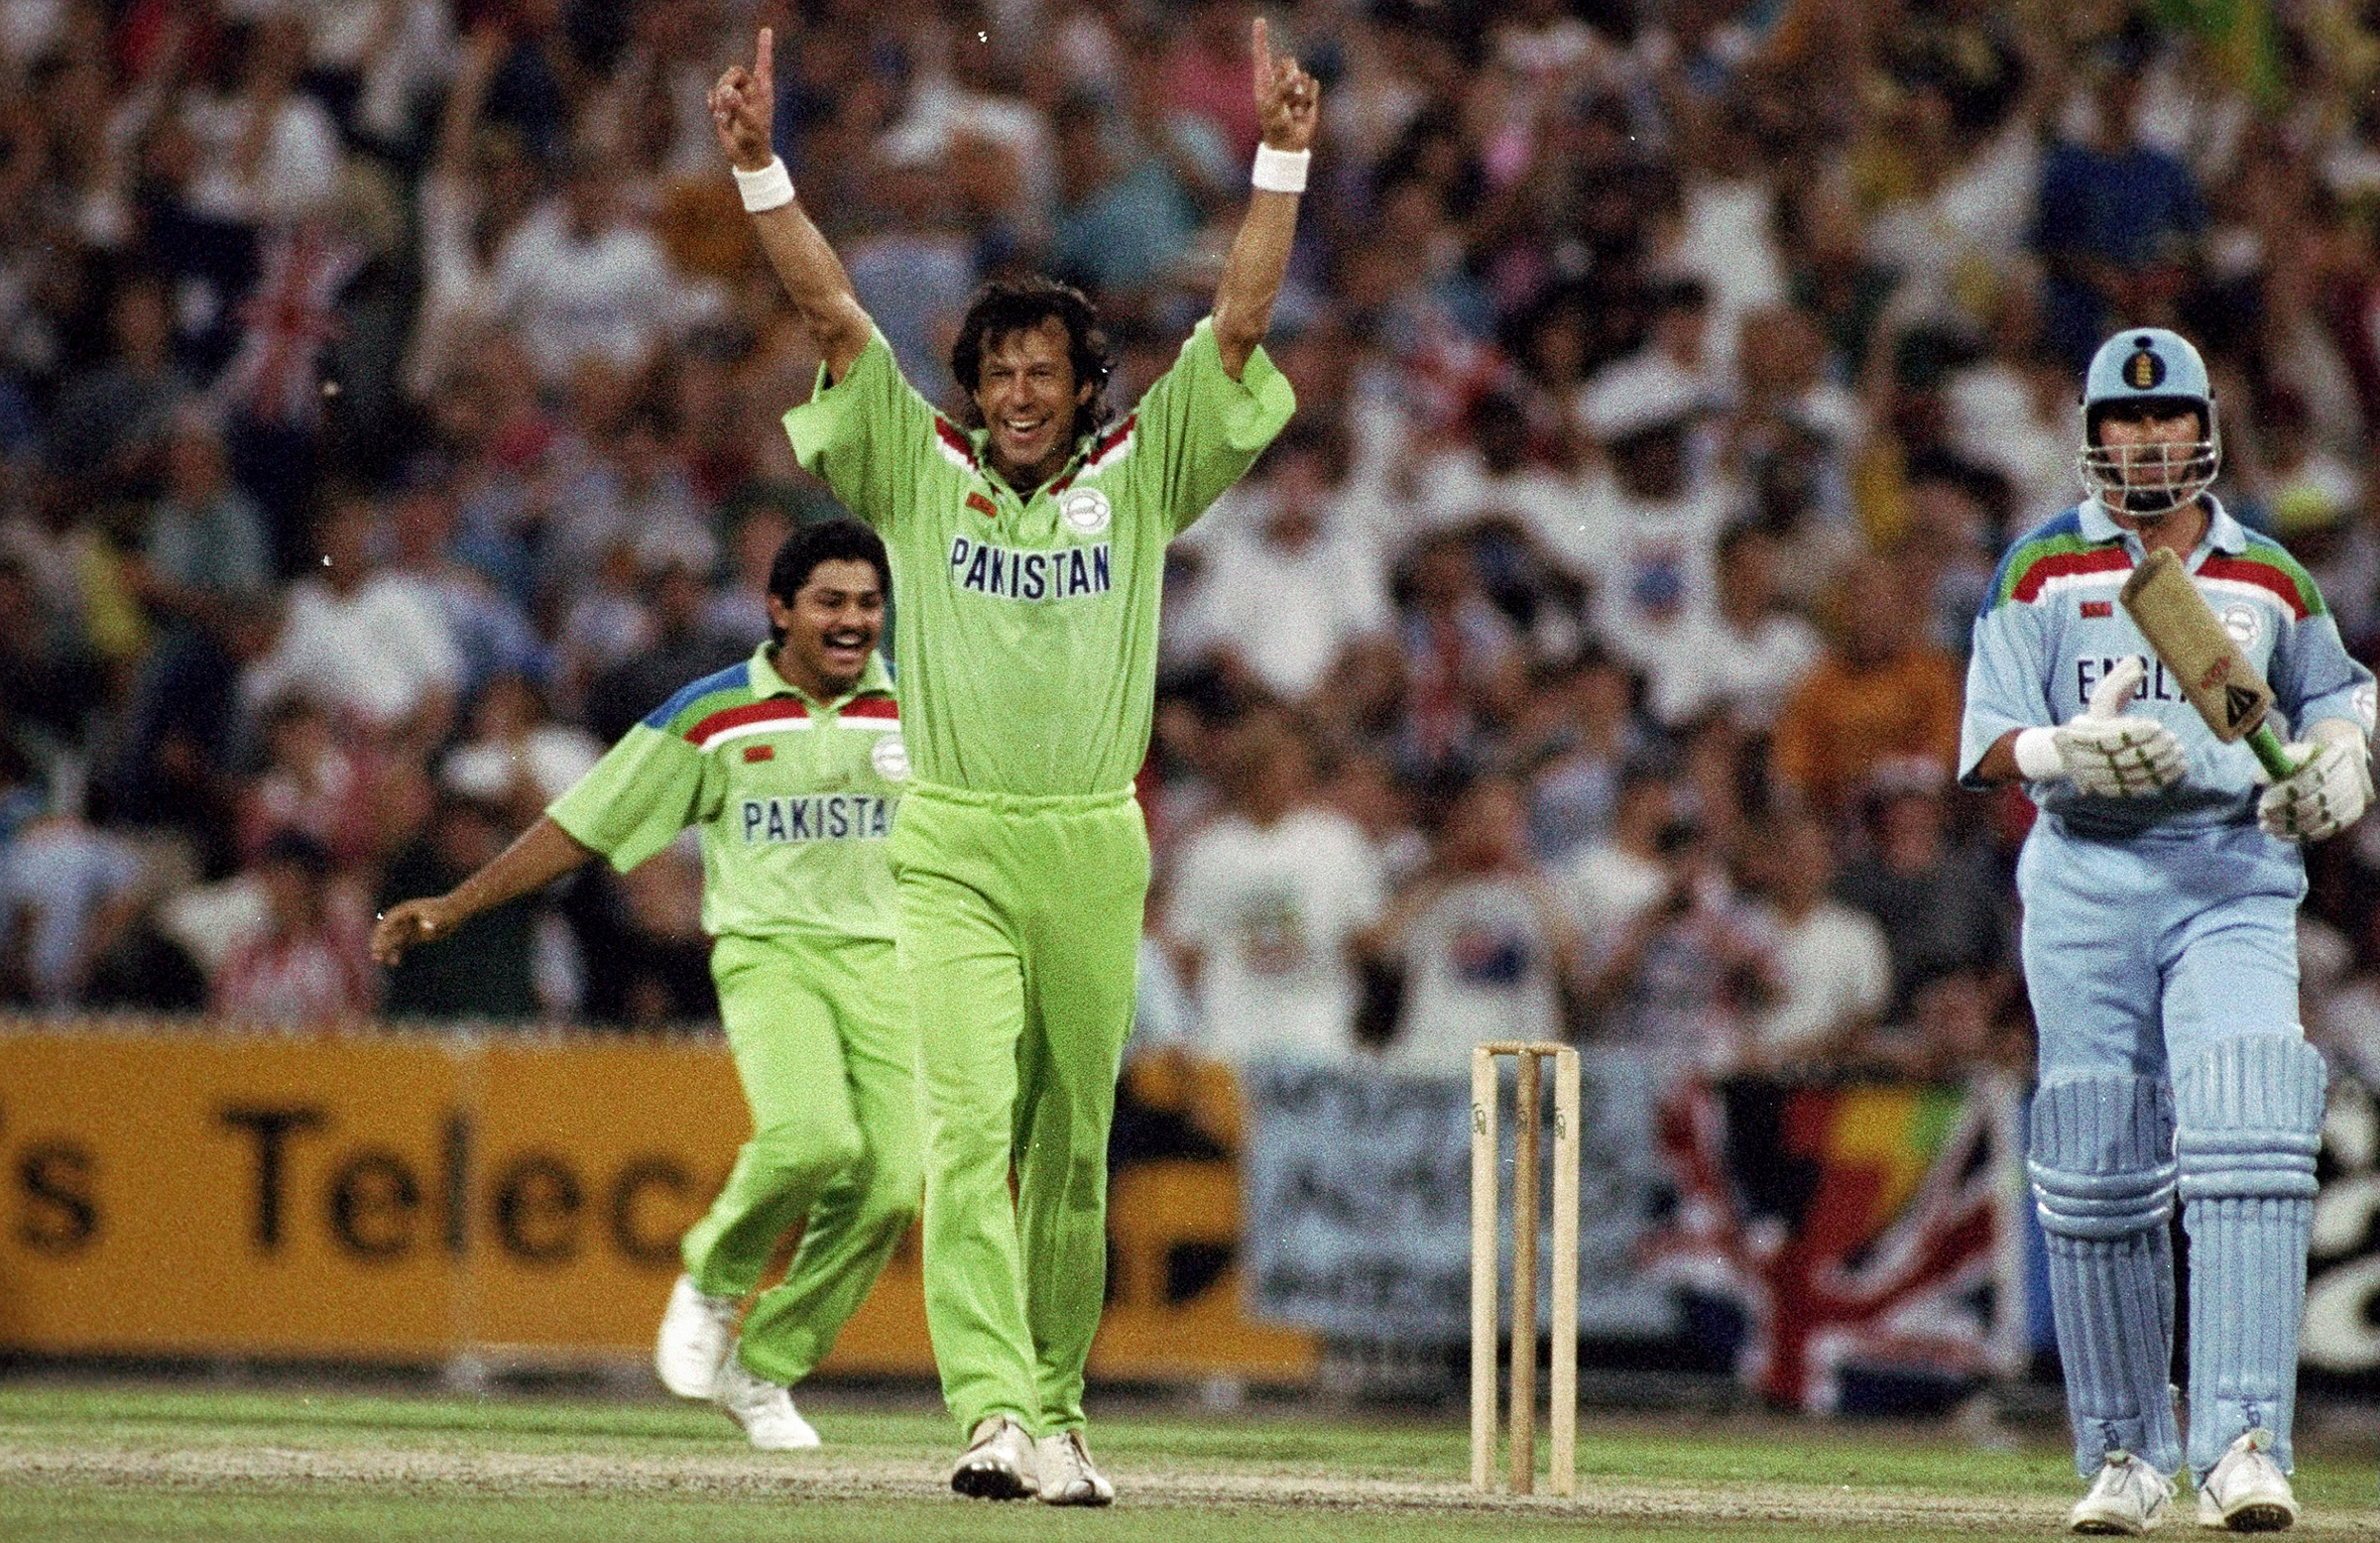 Imran celebrates as Pakistan clinch the World Cup final // Getty